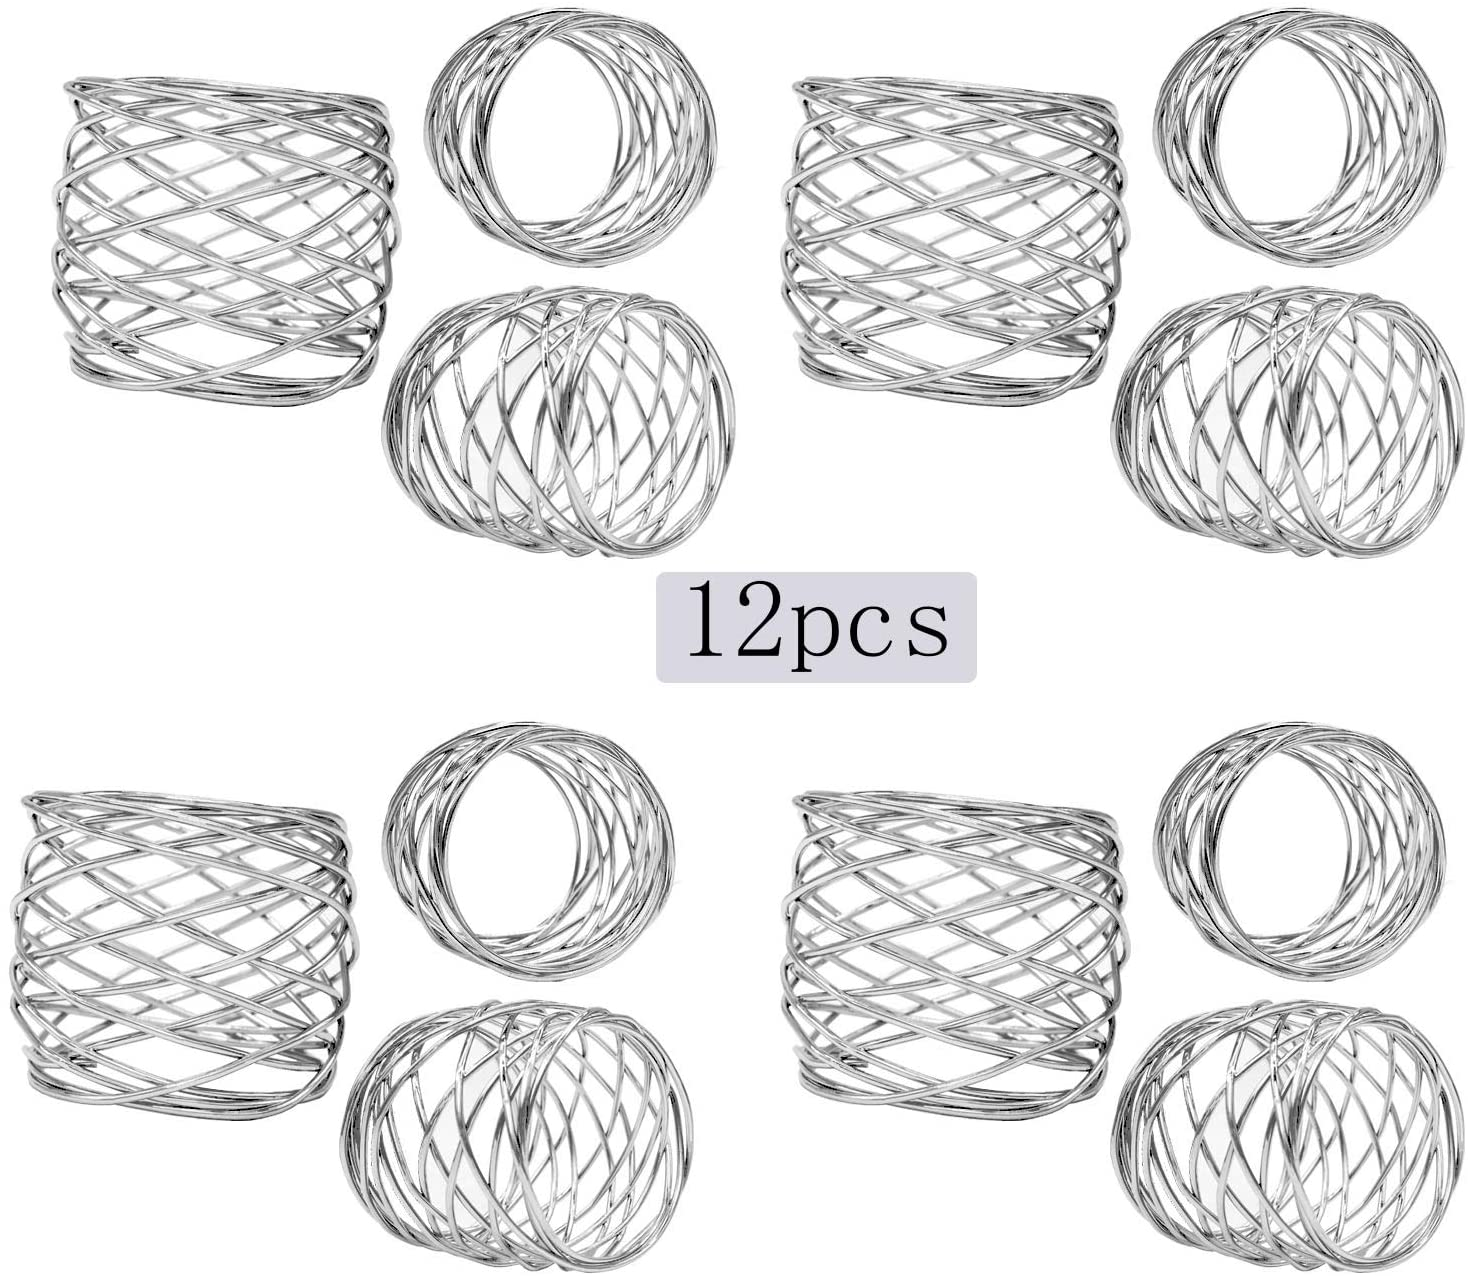 ZeeDix Set of 12 Sliver Round Mesh Napkin Rings for Dinning Table Setting-Handmade Napkin Holder Rings for Holiday Party,Wedding Receptions,Christmas,Thanksgiving and Home Kitchen for Casual or Formal